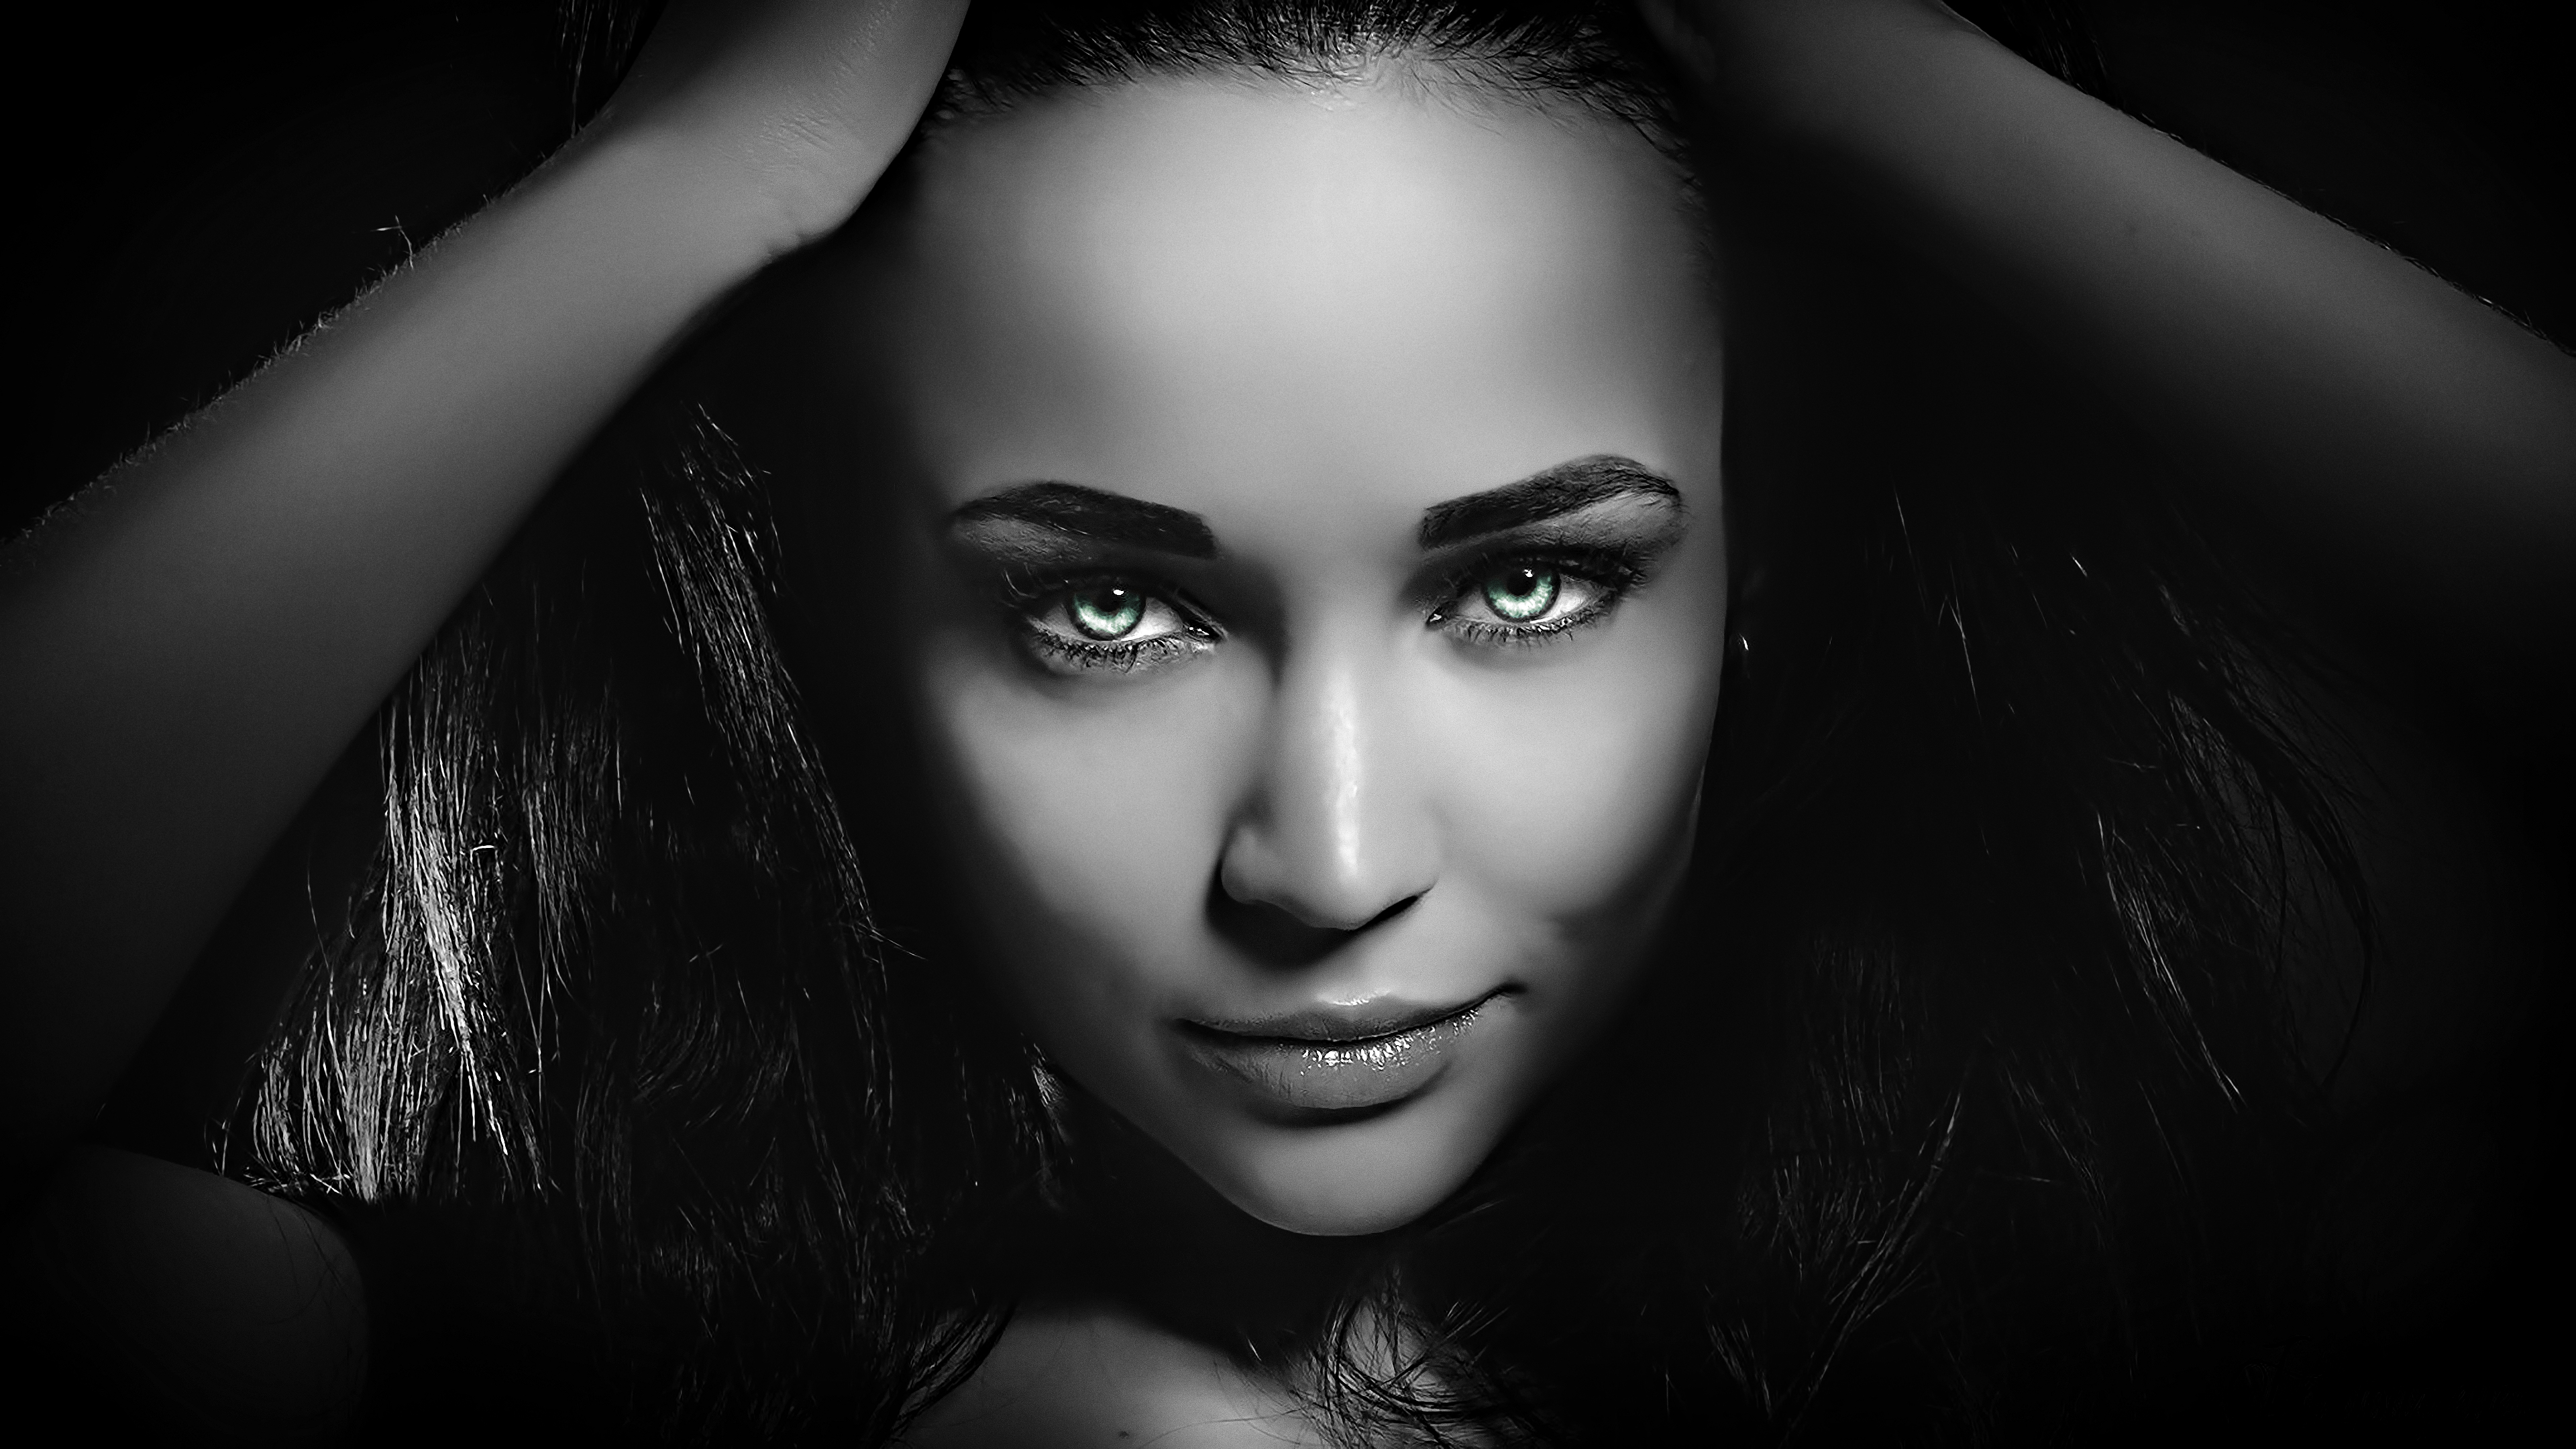 coloring face in photoshop women face model green eyes hands on head angelina in photoshop face coloring